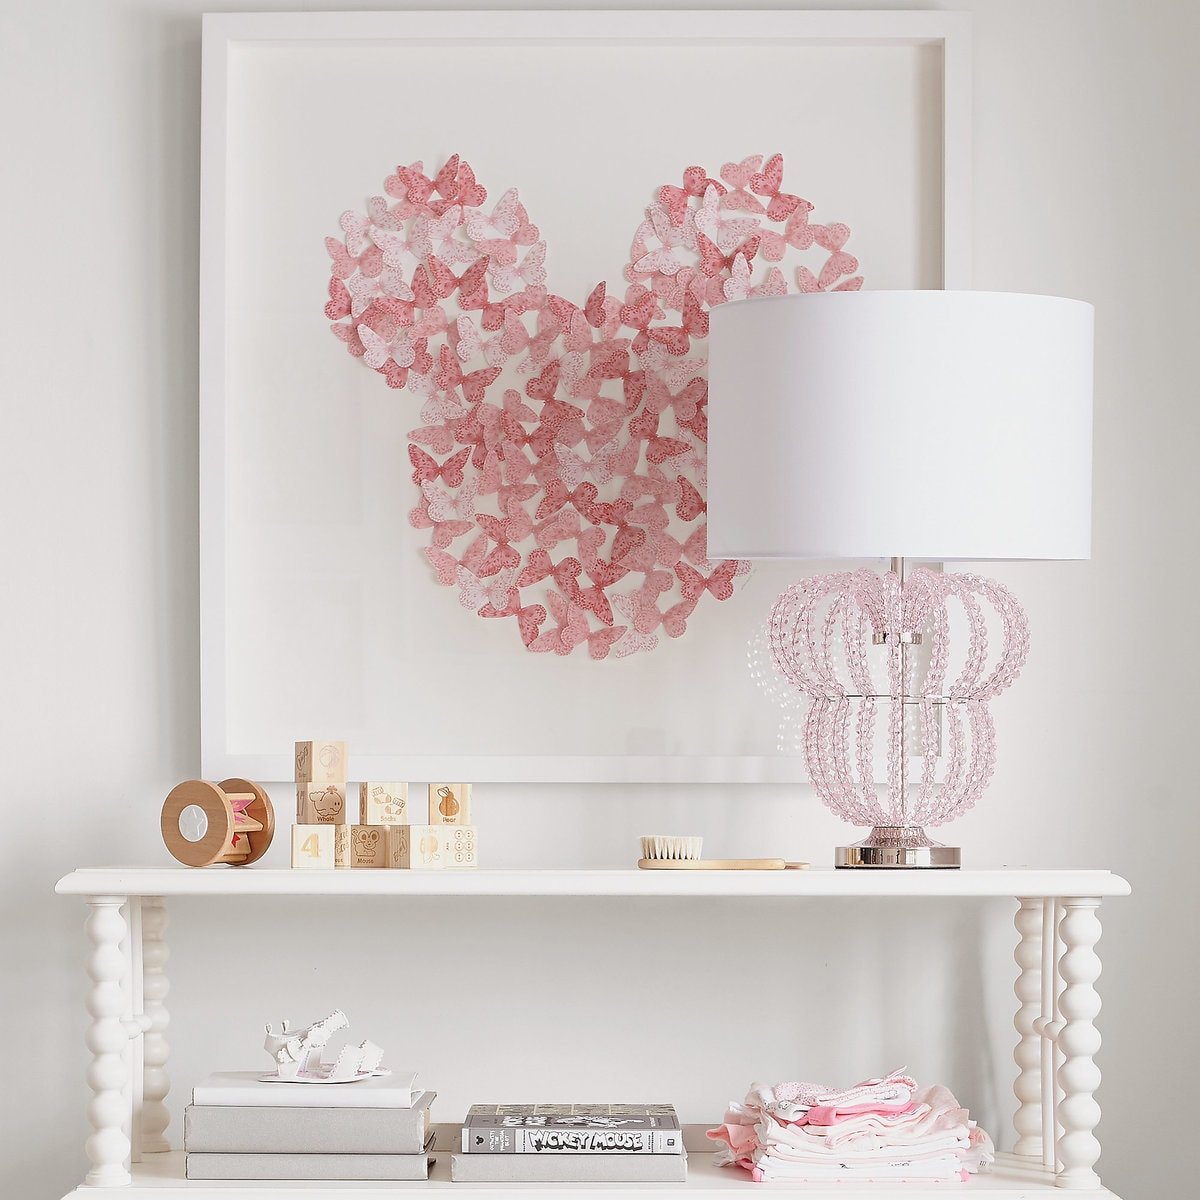 Minnie mouse beaded accent lamp by ethan allen shopdisney minnie mouse beaded accent lamp by ethan allen geotapseo Gallery